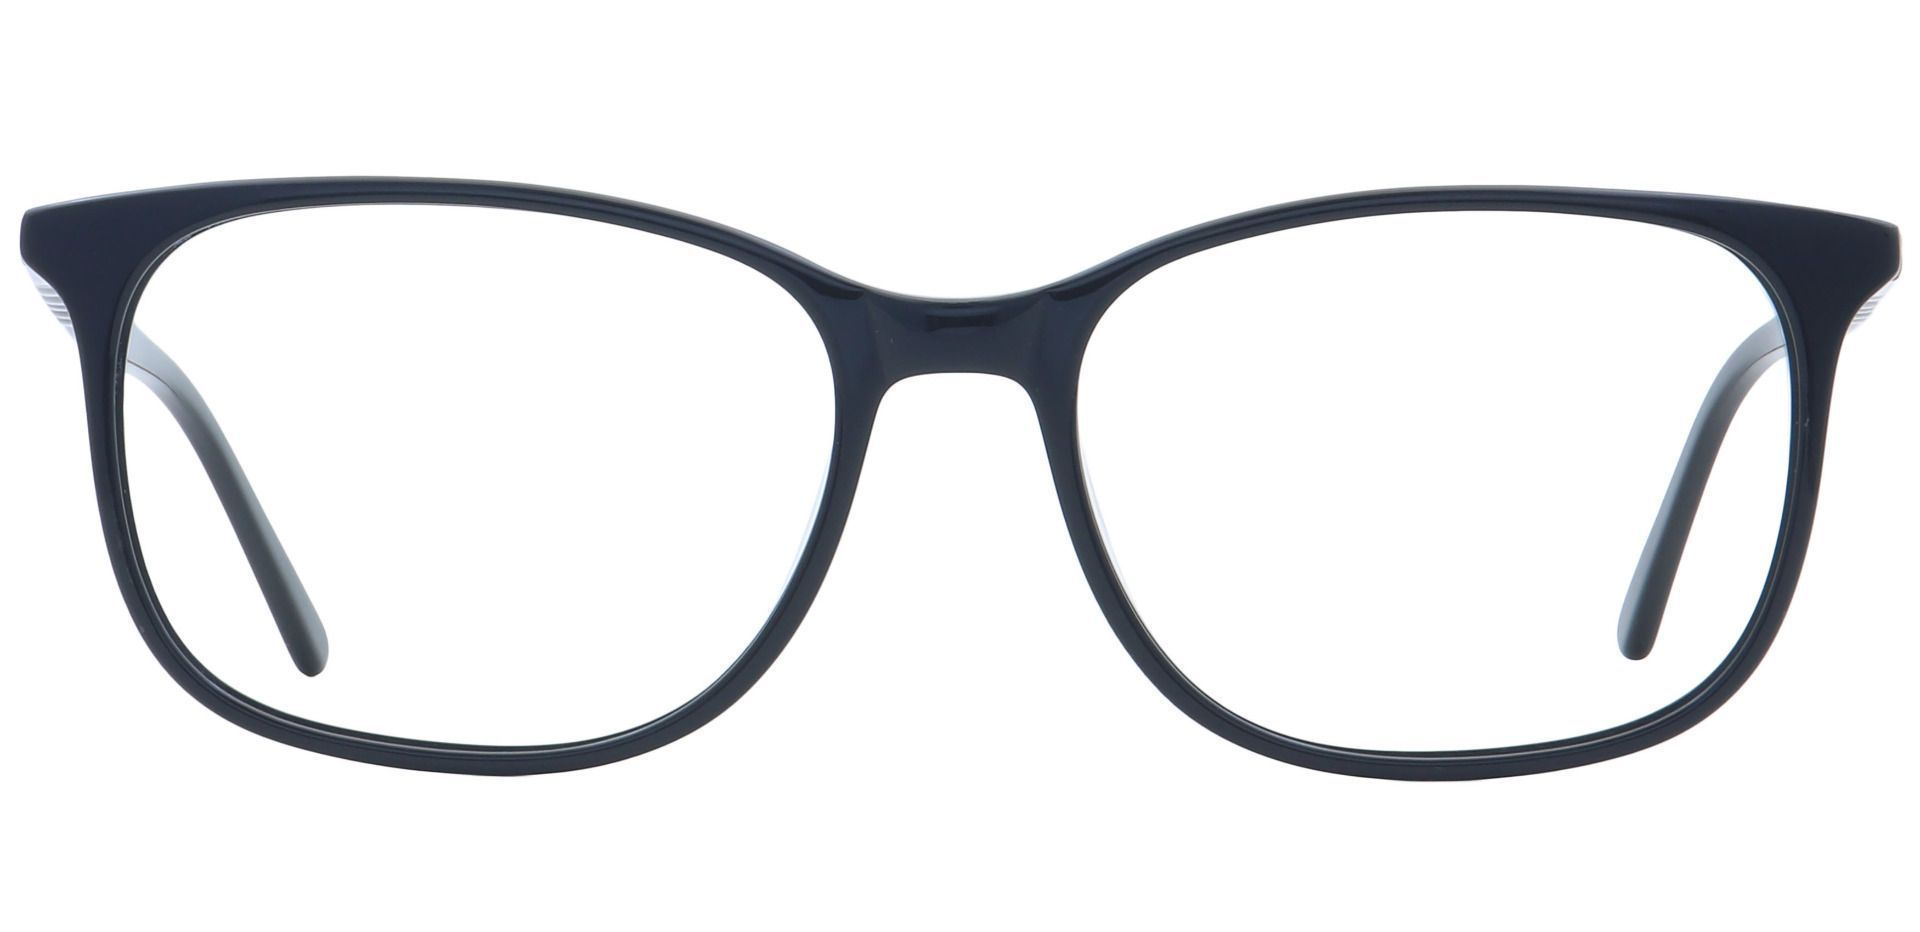 Mason Square Blue Light Blocking Glasses - Black